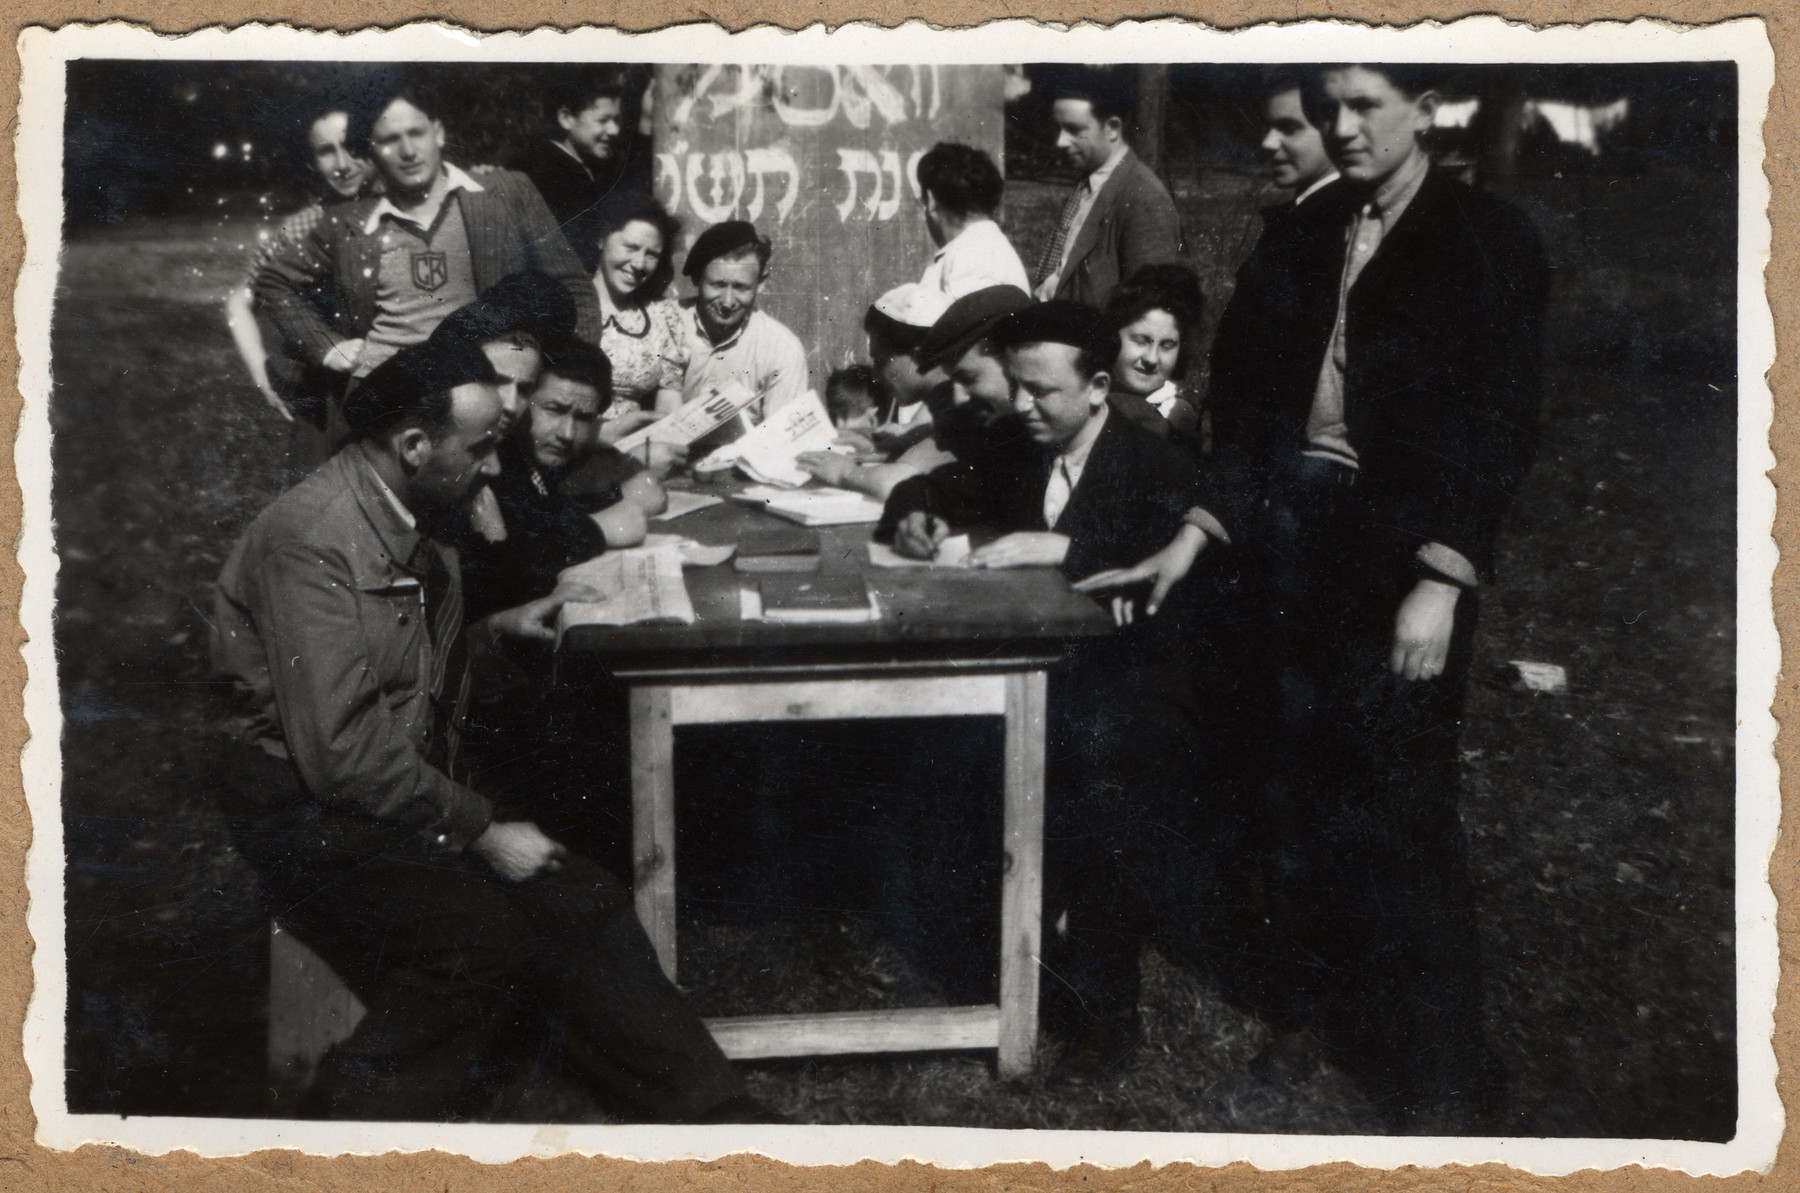 A group of teenage boys who were liberated from Buchenwald gather outside by a table to share information and read.    The sign in the background ireferences the Hebrew New Year 5706 which fell on September 8, 1945.